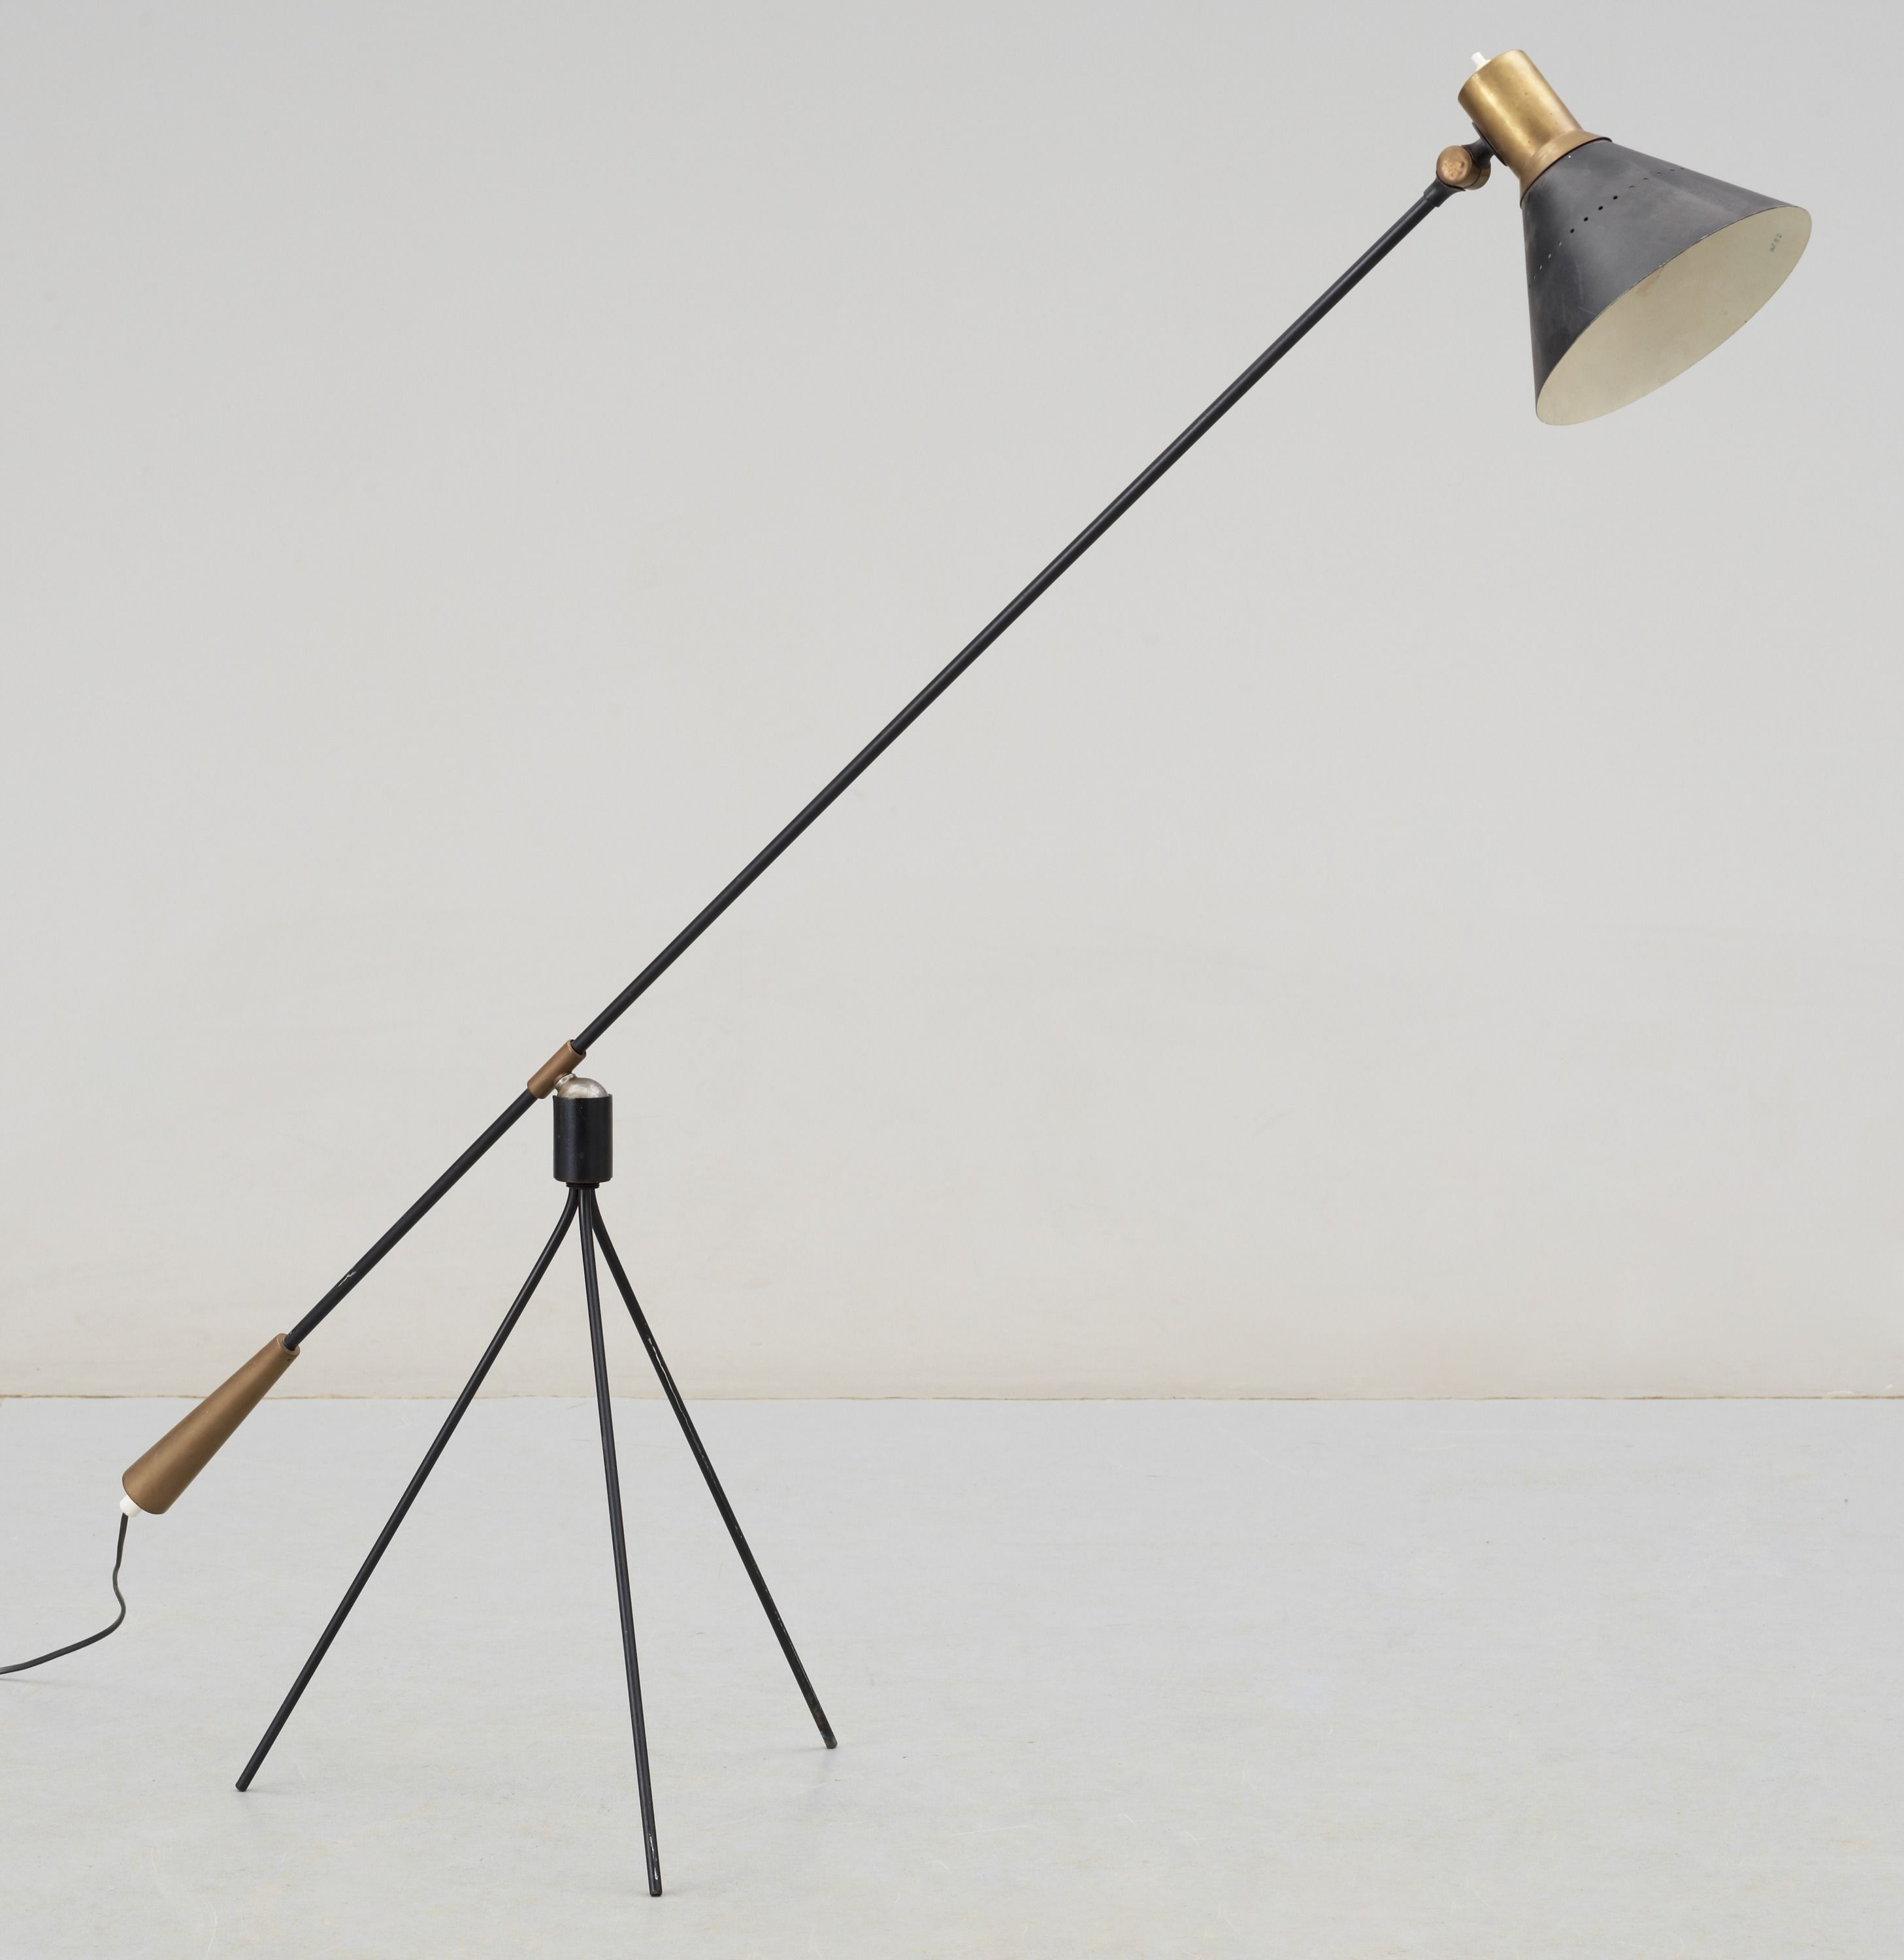 Gilbert watrous brass and enameled steel floor lamp for bergboms gilbert watrous brass and enameled steel floor lamp for bergboms 1950s mozeypictures Image collections